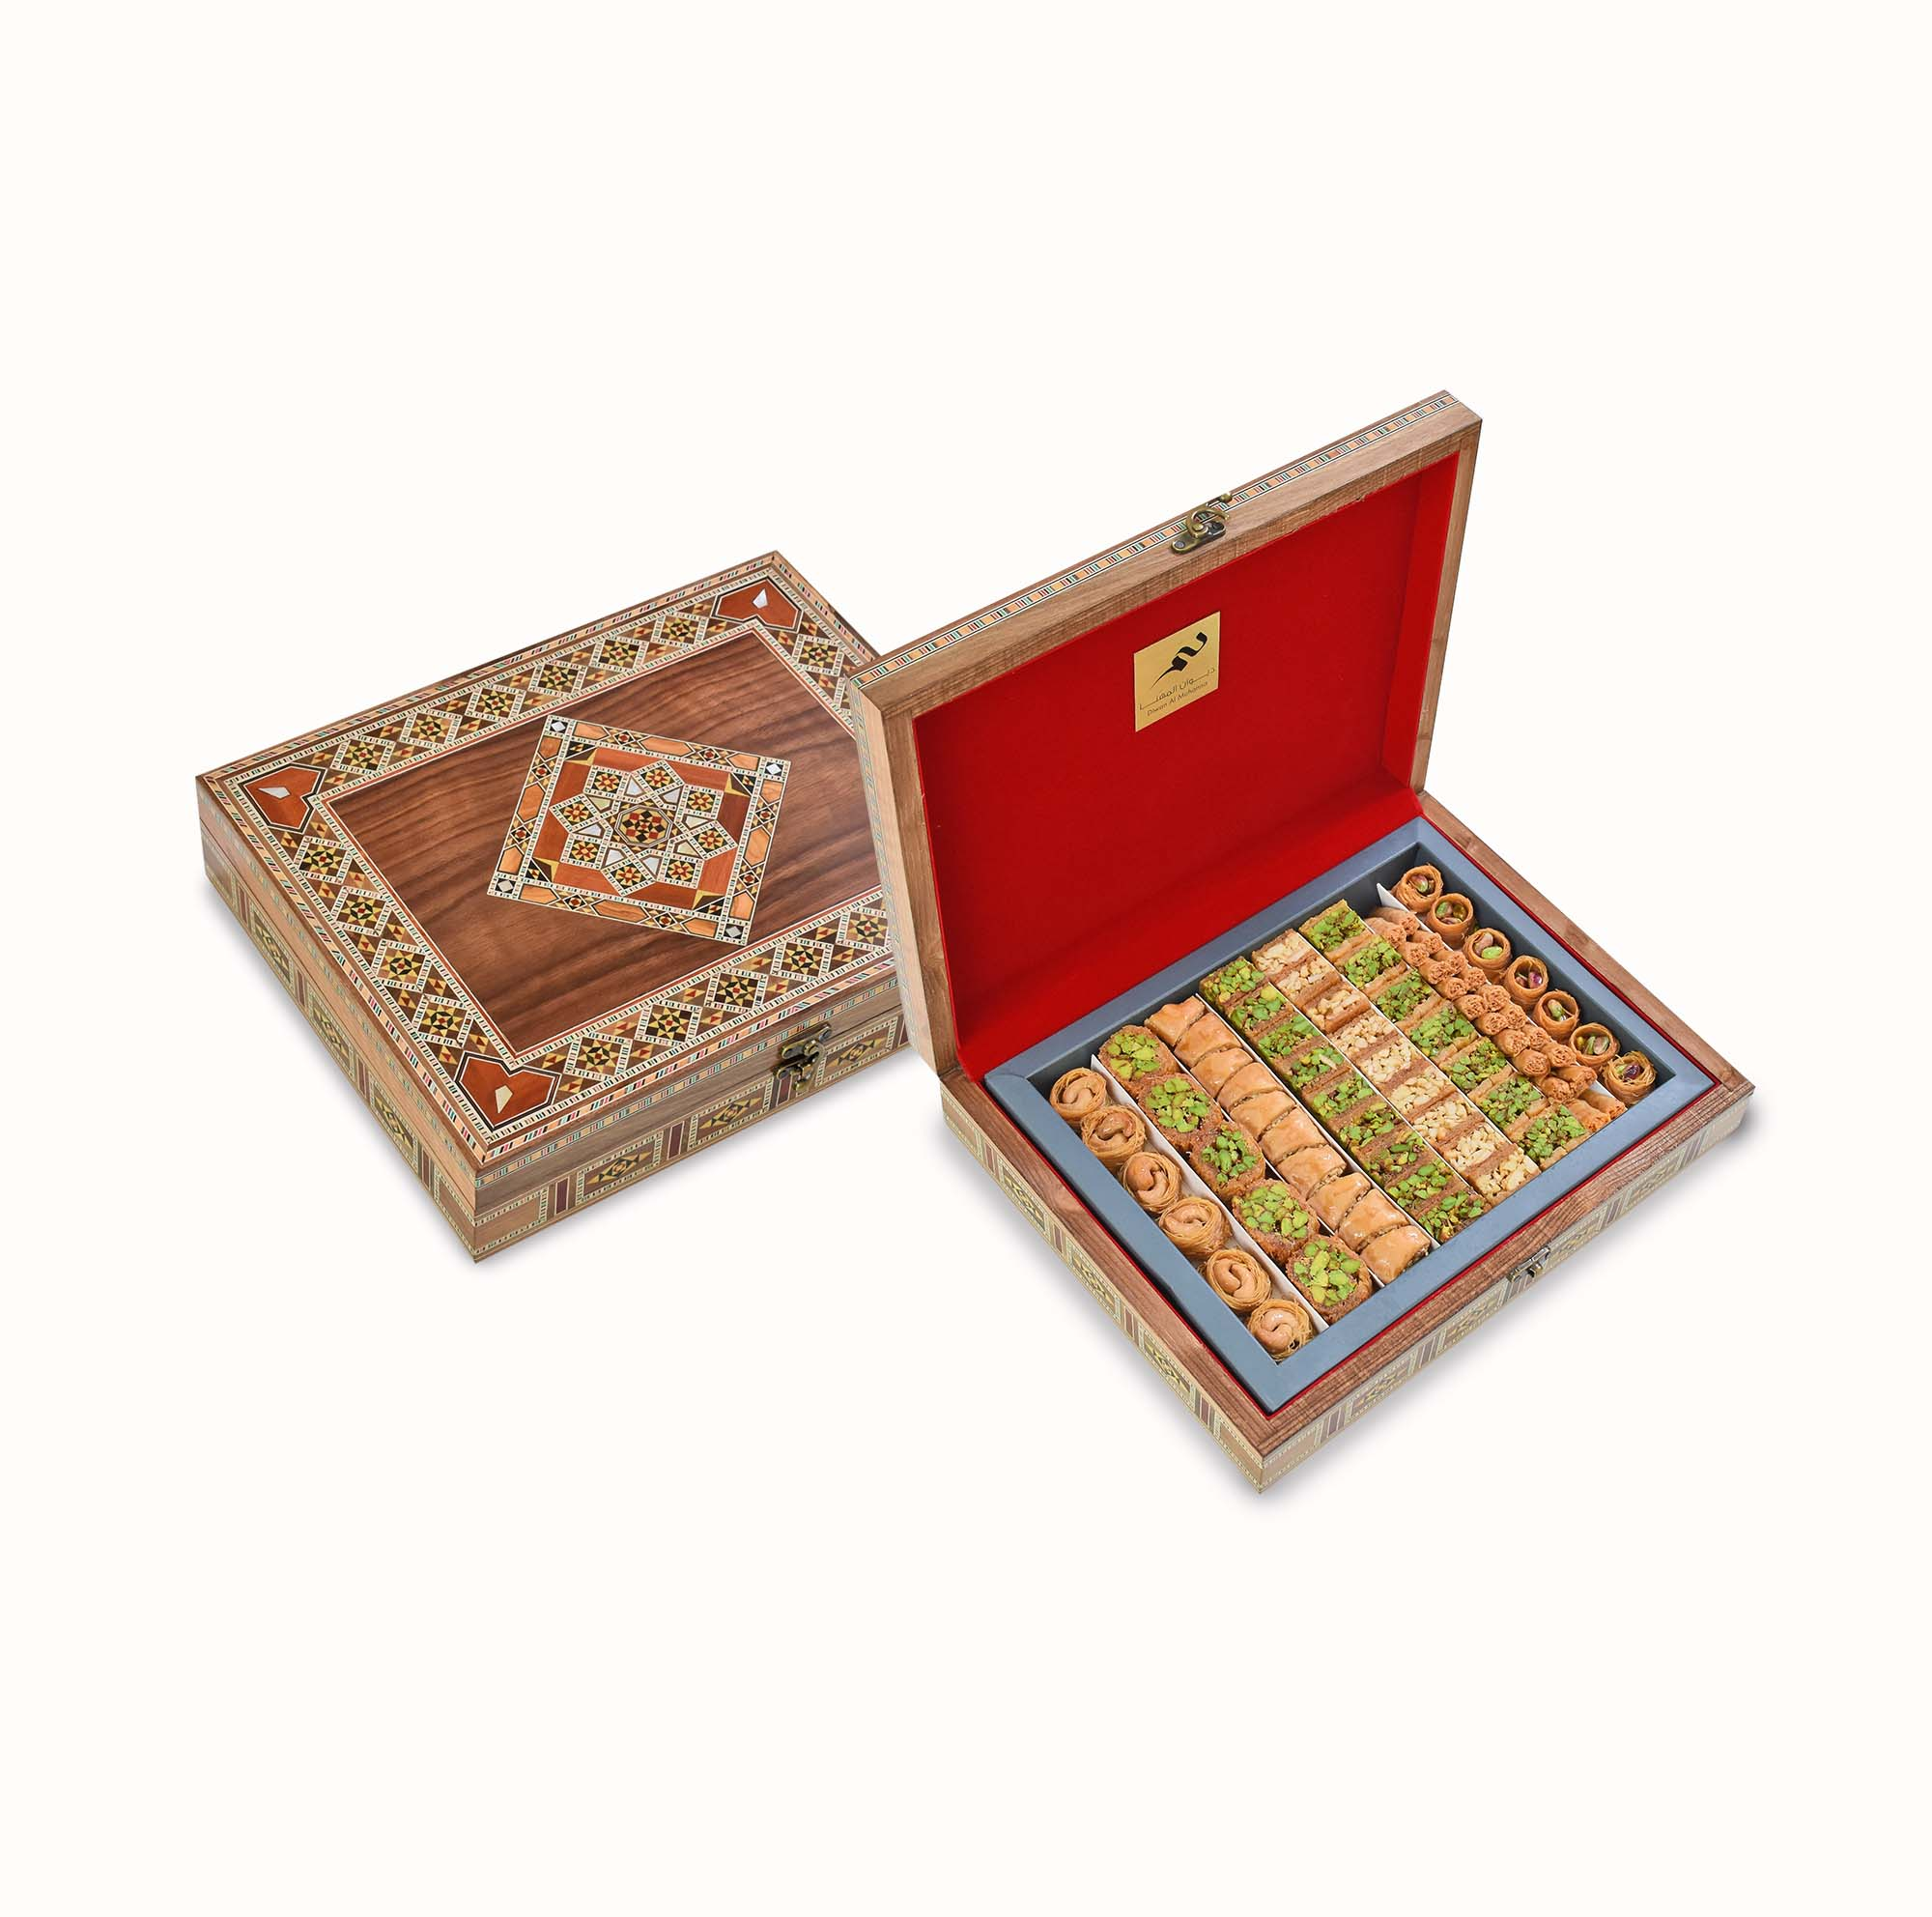 DM Mosaic Box 1000g